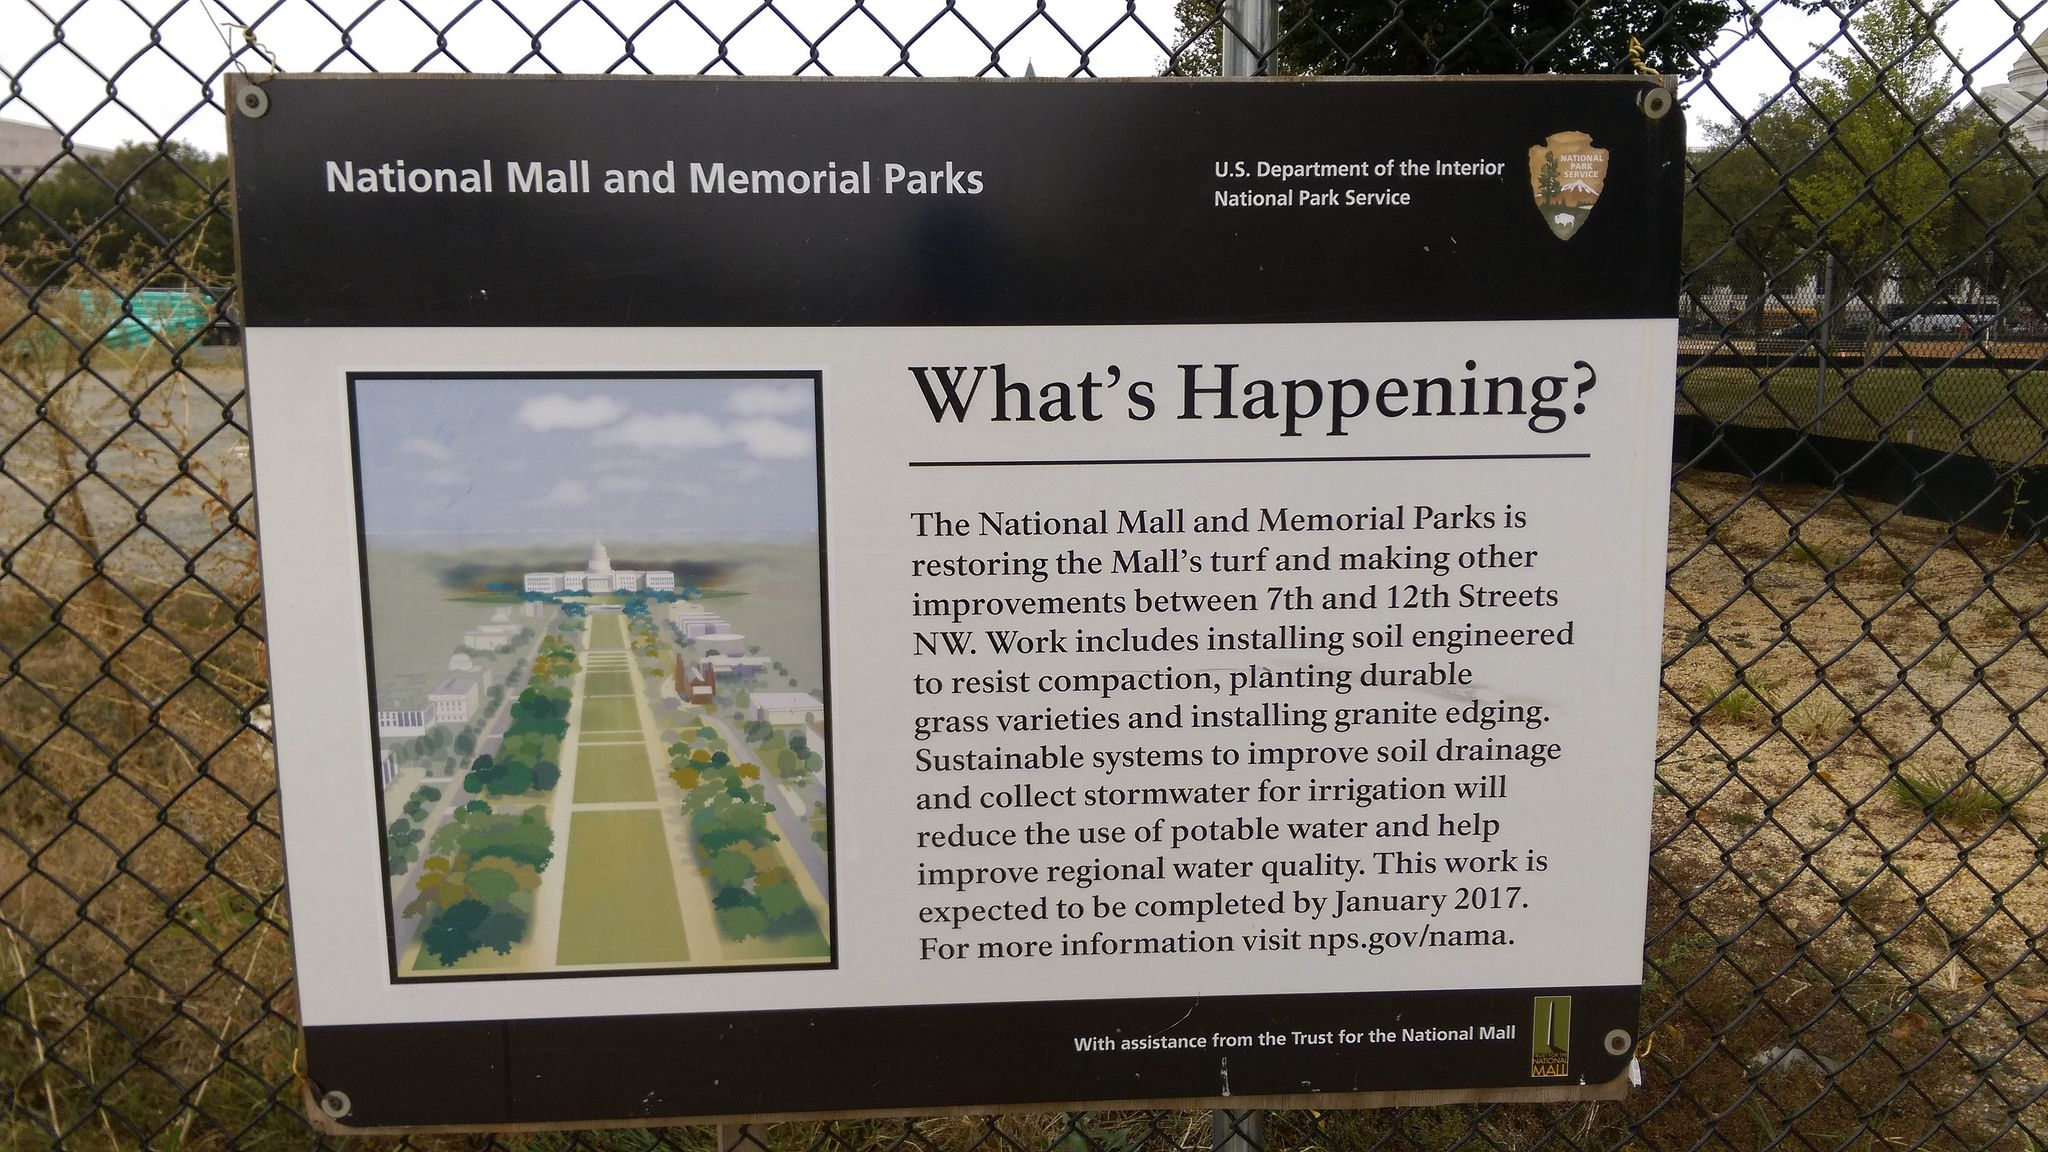 httpsflickrpyMGMam The National Mall via The